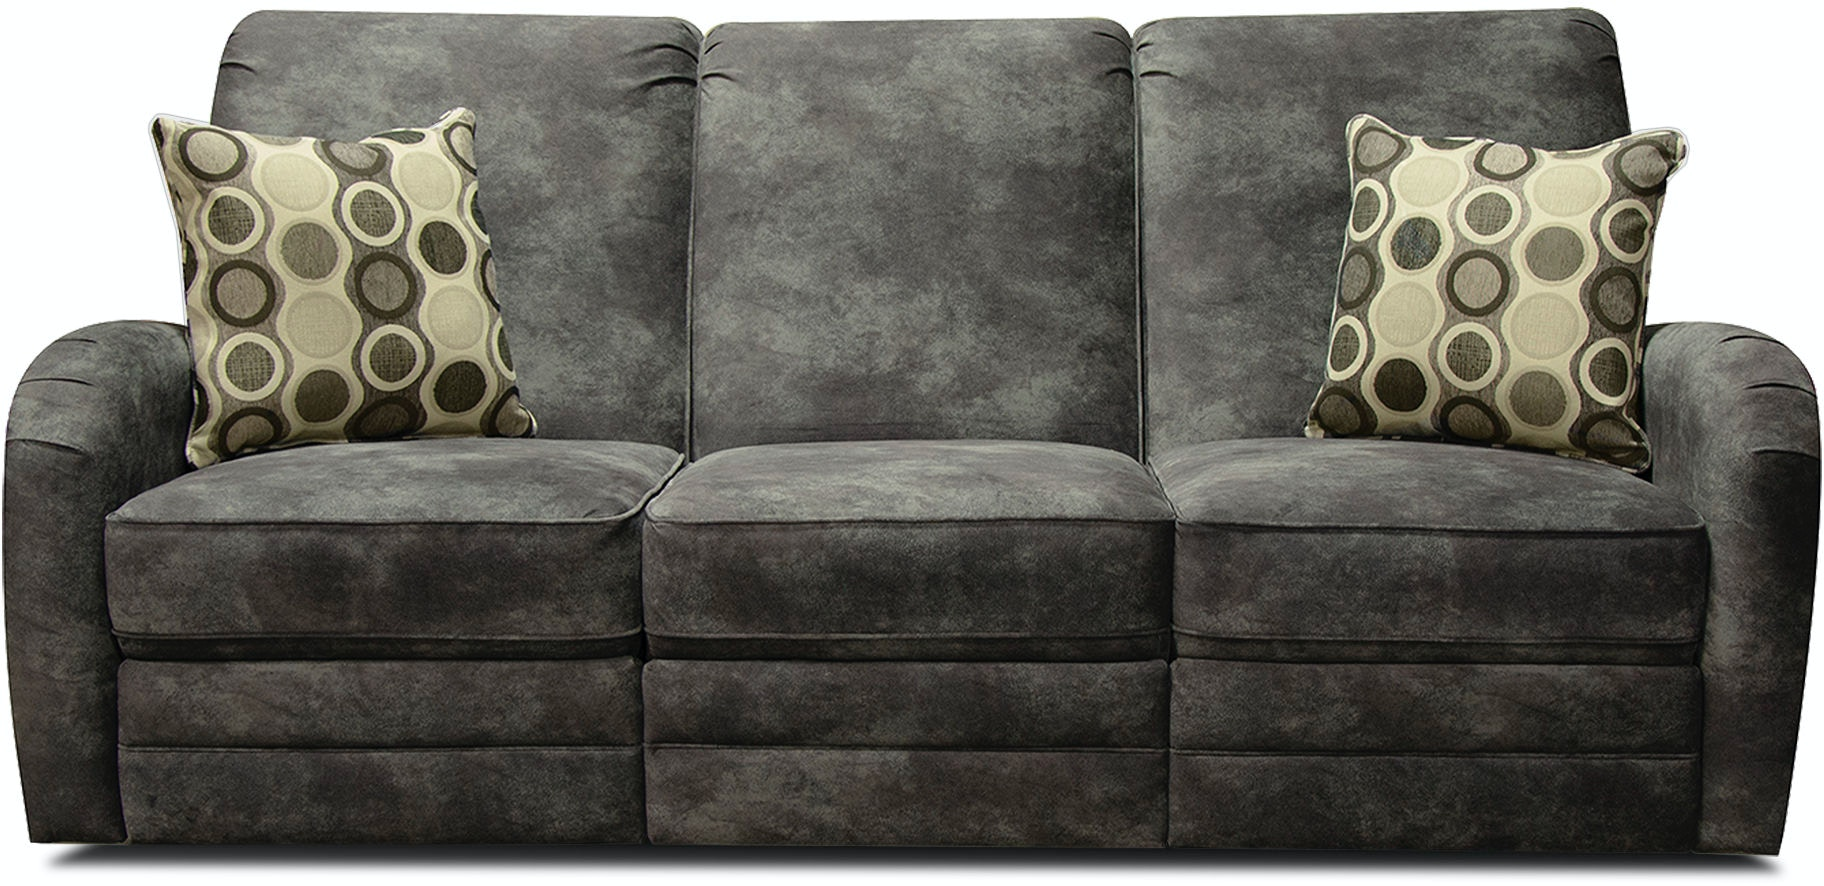 England Living Room Reclining Sofa EZ4U01 England Furniture